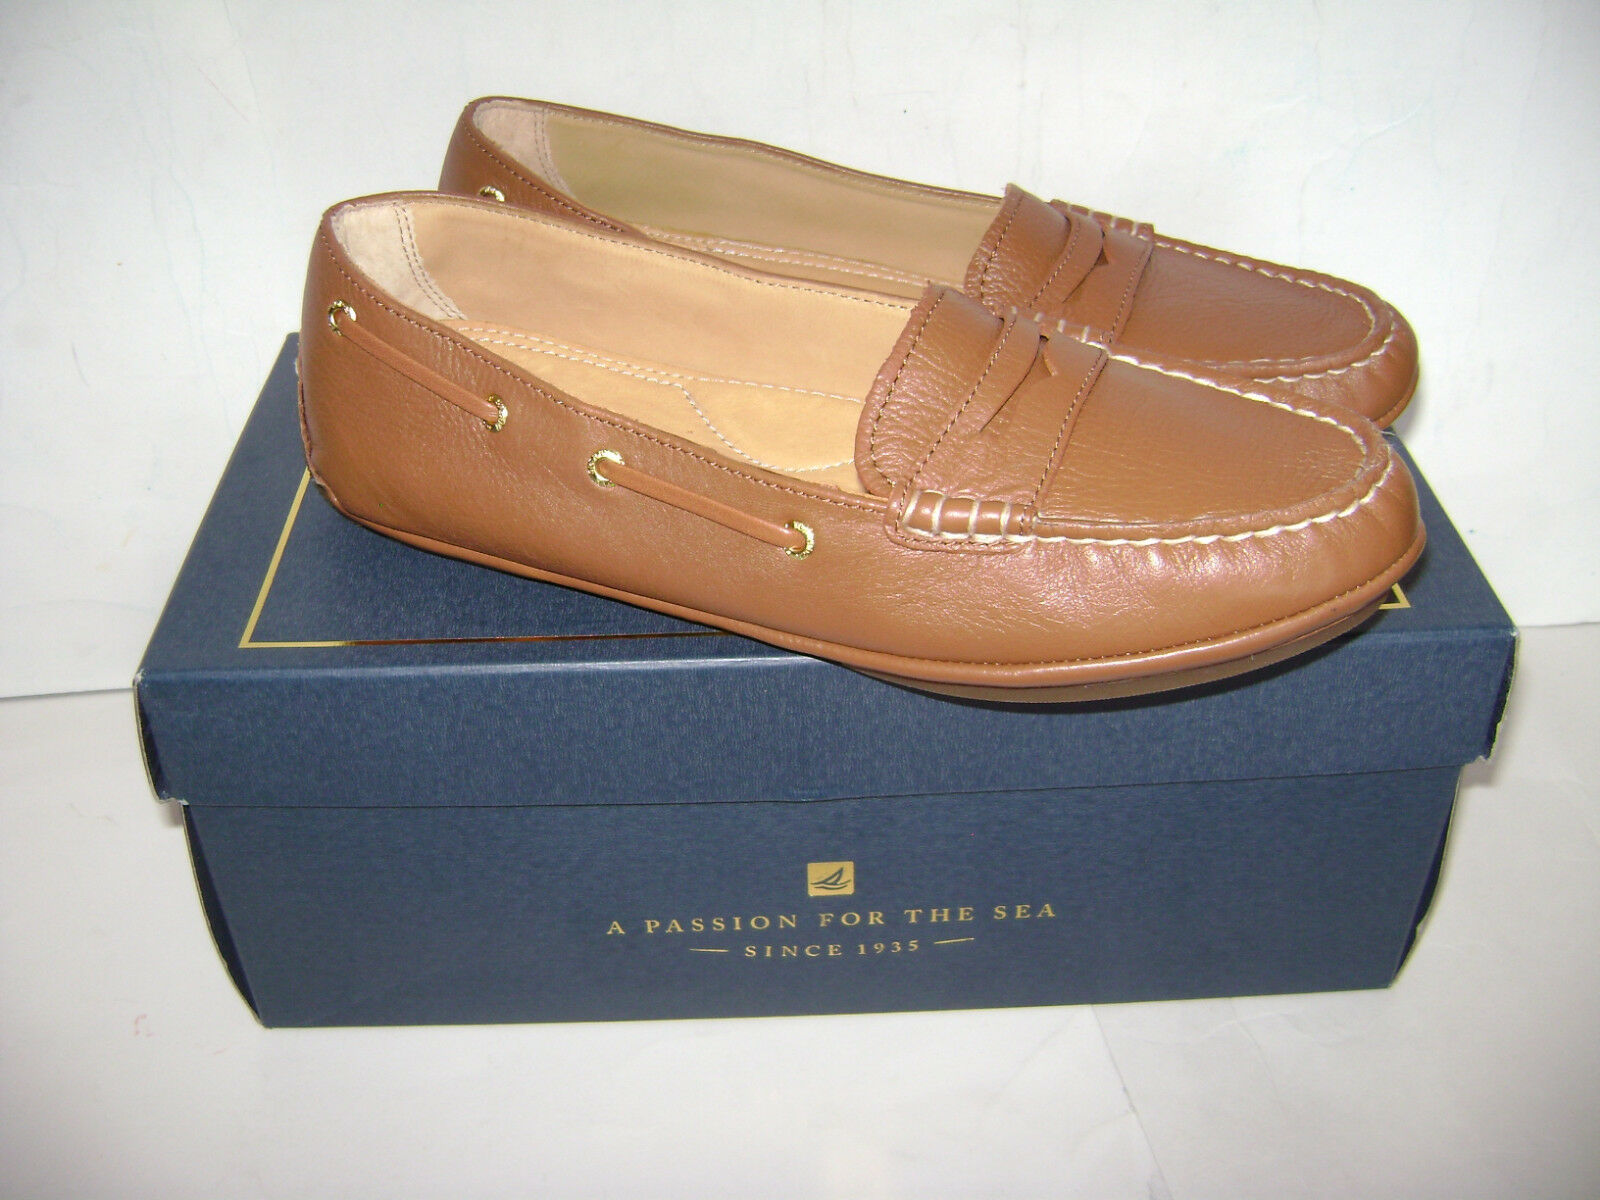 NIB SPERRY TOP SIDER gold CUP PENNY DRIVER COGNAC WOMEN SHOES Size 6.5 M LOAFERS